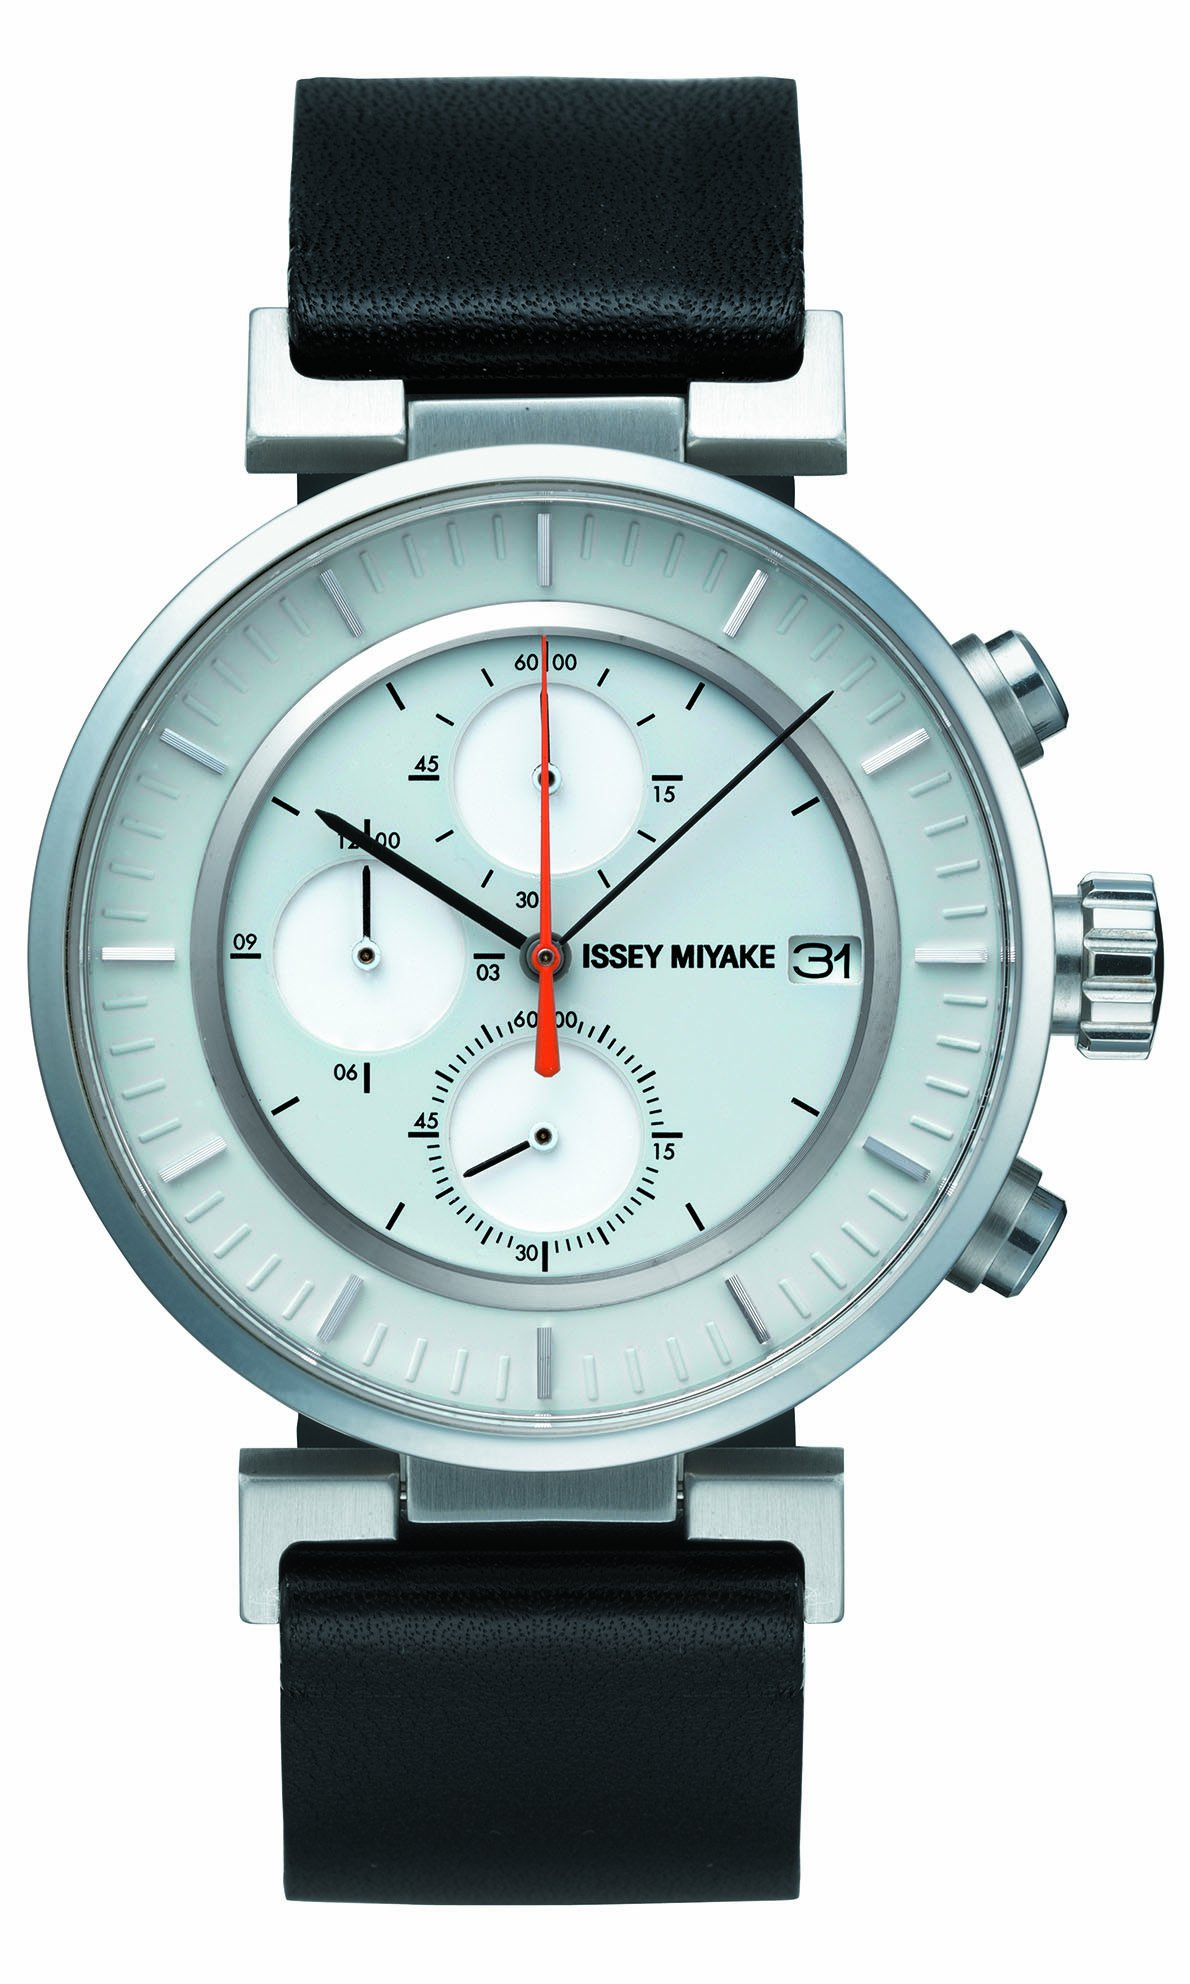 Issey Miyake W Unisex Quartz Watch with White Dial Chronograph Display and Black Leather Strap SILAY004 by Issey Miyake